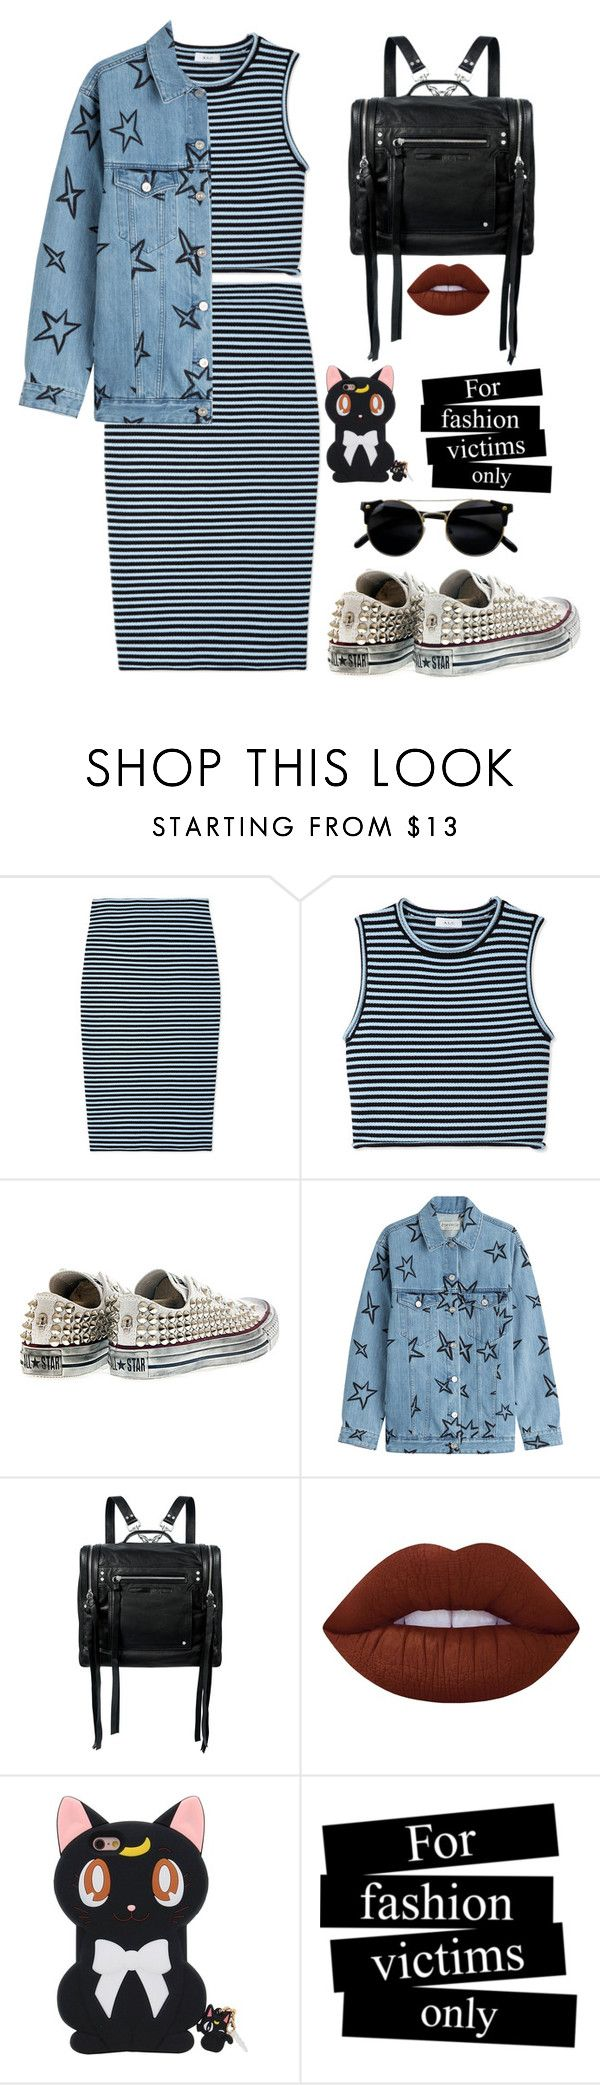 """Sin título #1664"" by mrs-malfoy ❤ liked on Polyvore featuring A.L.C., Converse, Être Cécile, McQ by Alexander McQueen, Lime Crime, converse, alc, McQbyAlexanderMcQueen and etrececile"